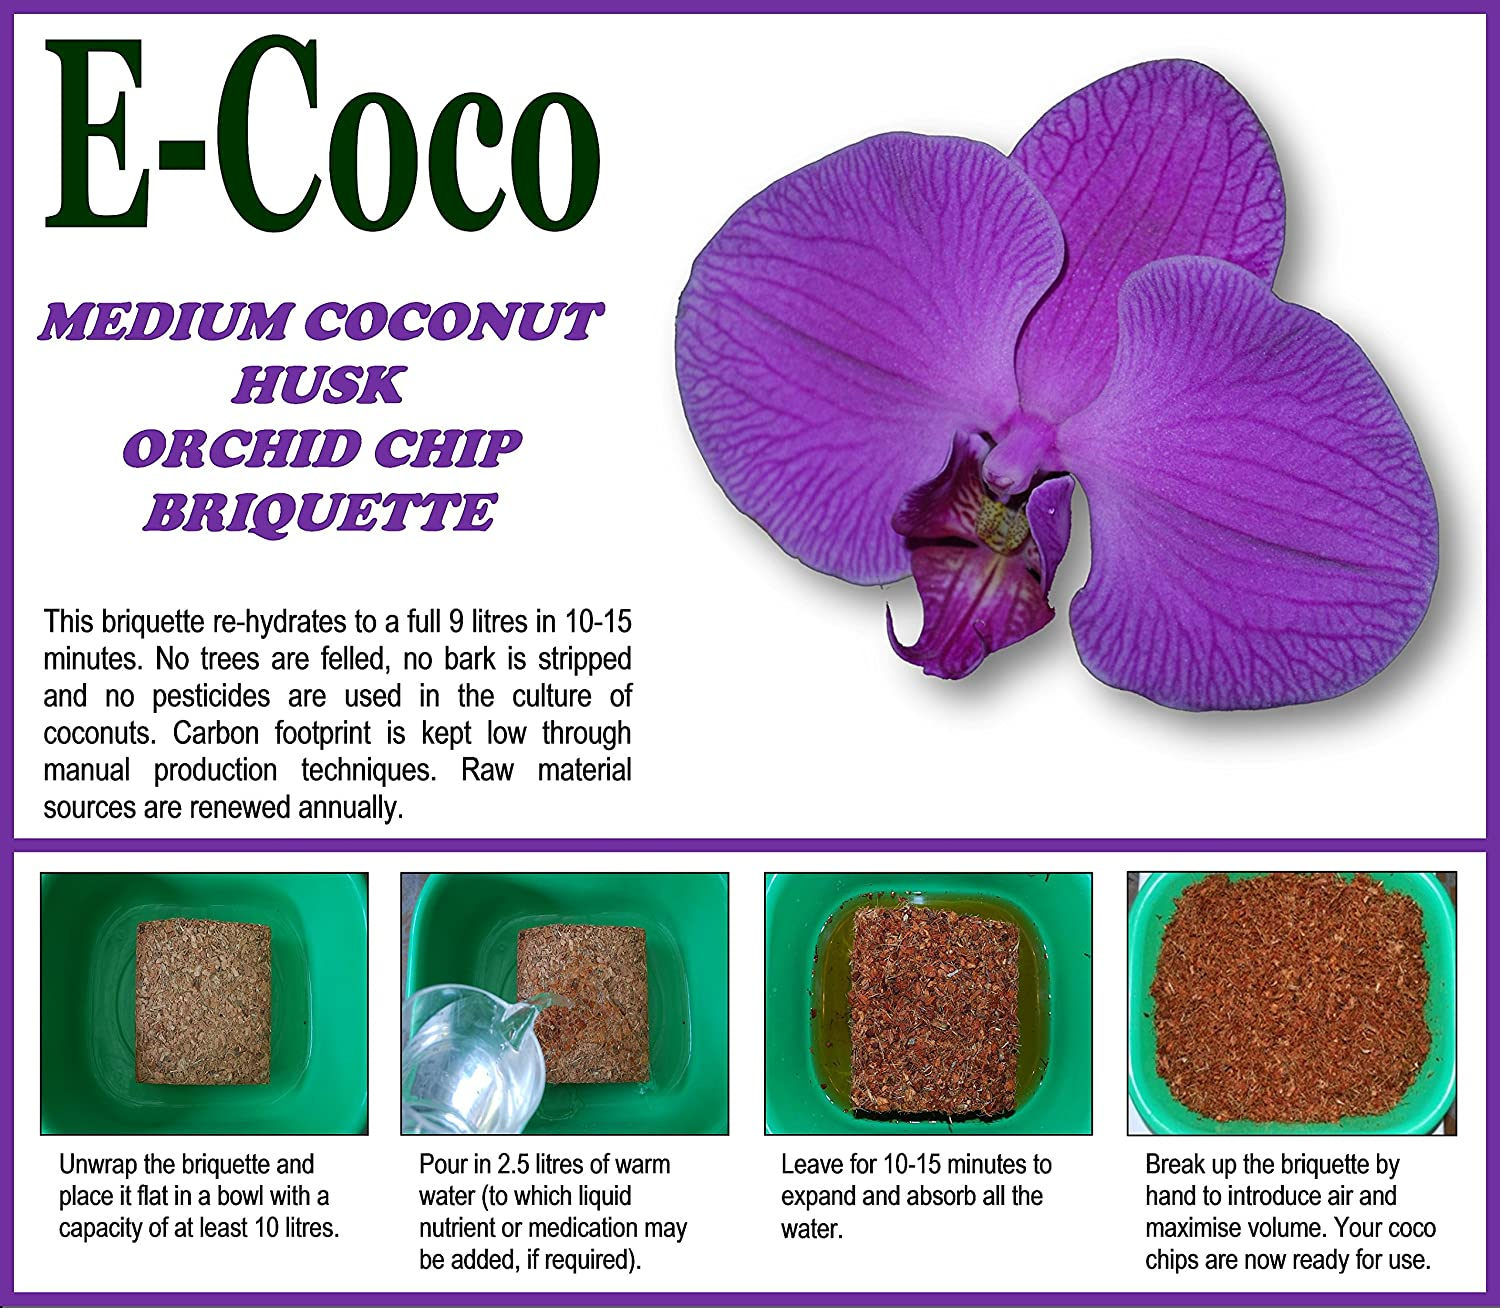 ORCHIDS COMPOST MEDIUM GRADE FOR ORCHID PLANTS POTTING OR RE-POTTING - ORCHID BARK SUBSTITUTE - COMPRESSED BRIQUETTE (9 LITRES) E-Coco Products UK